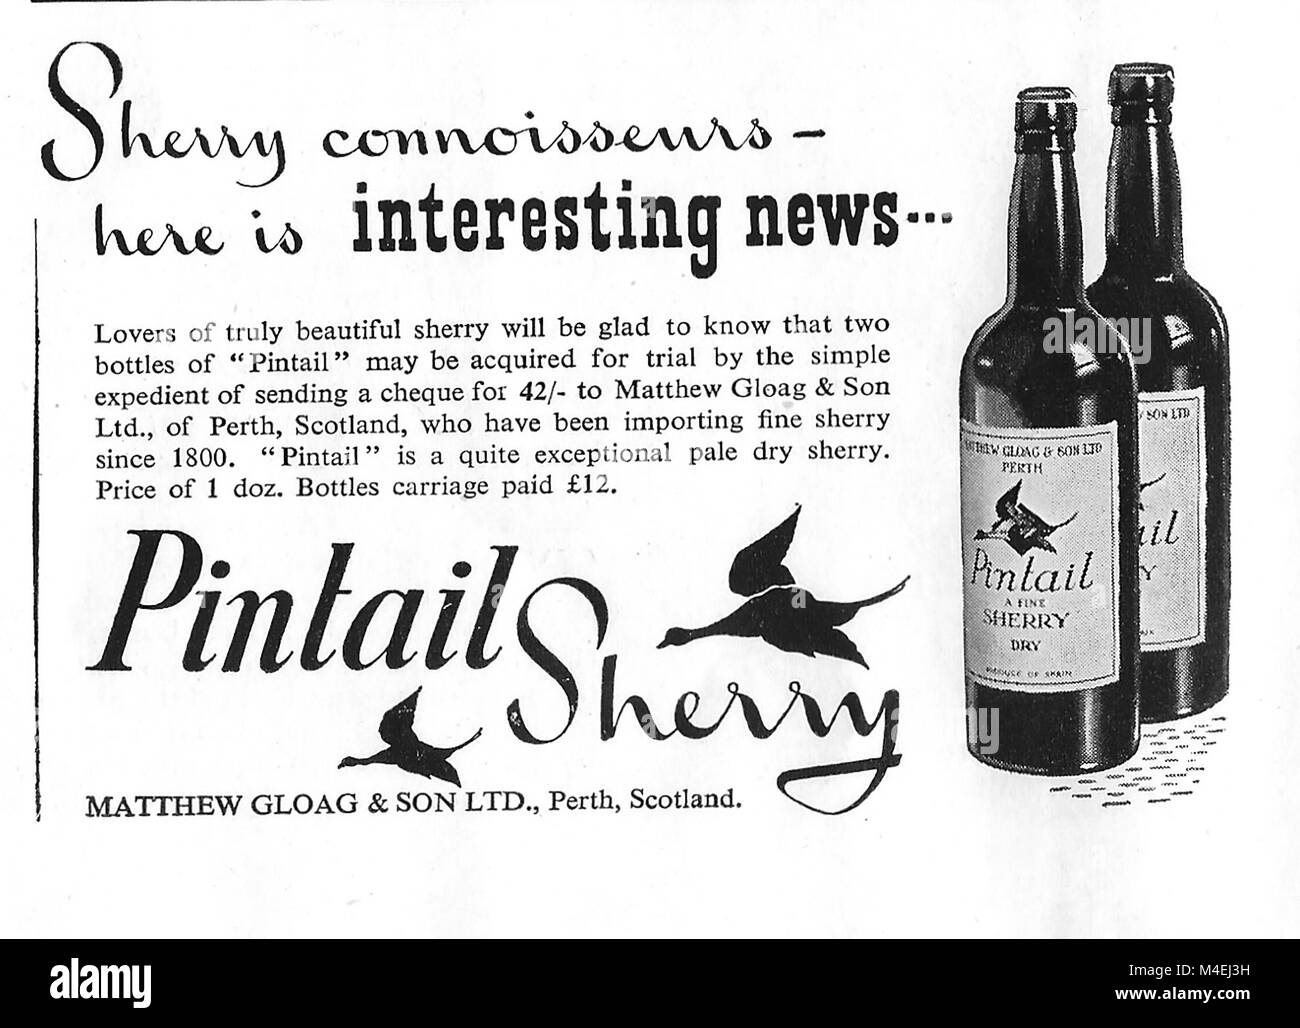 Pintail sherry advert, advertising in Country Life magazine UK 1951 - Stock Image